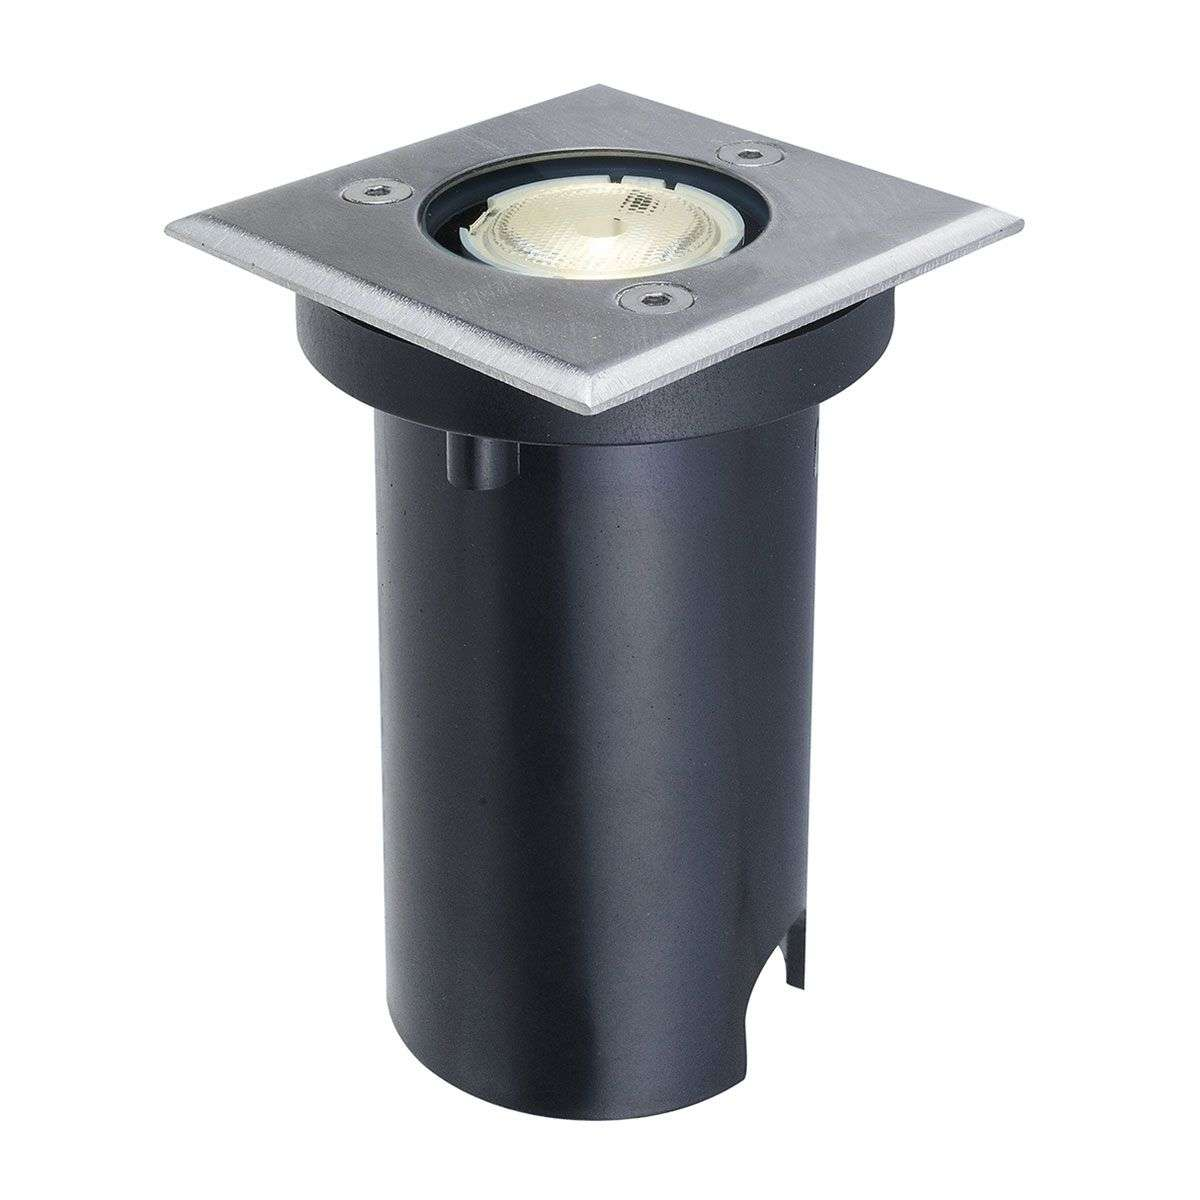 Foco LED empotrable en suelo Kenan IP65 49 lm-9616036-31